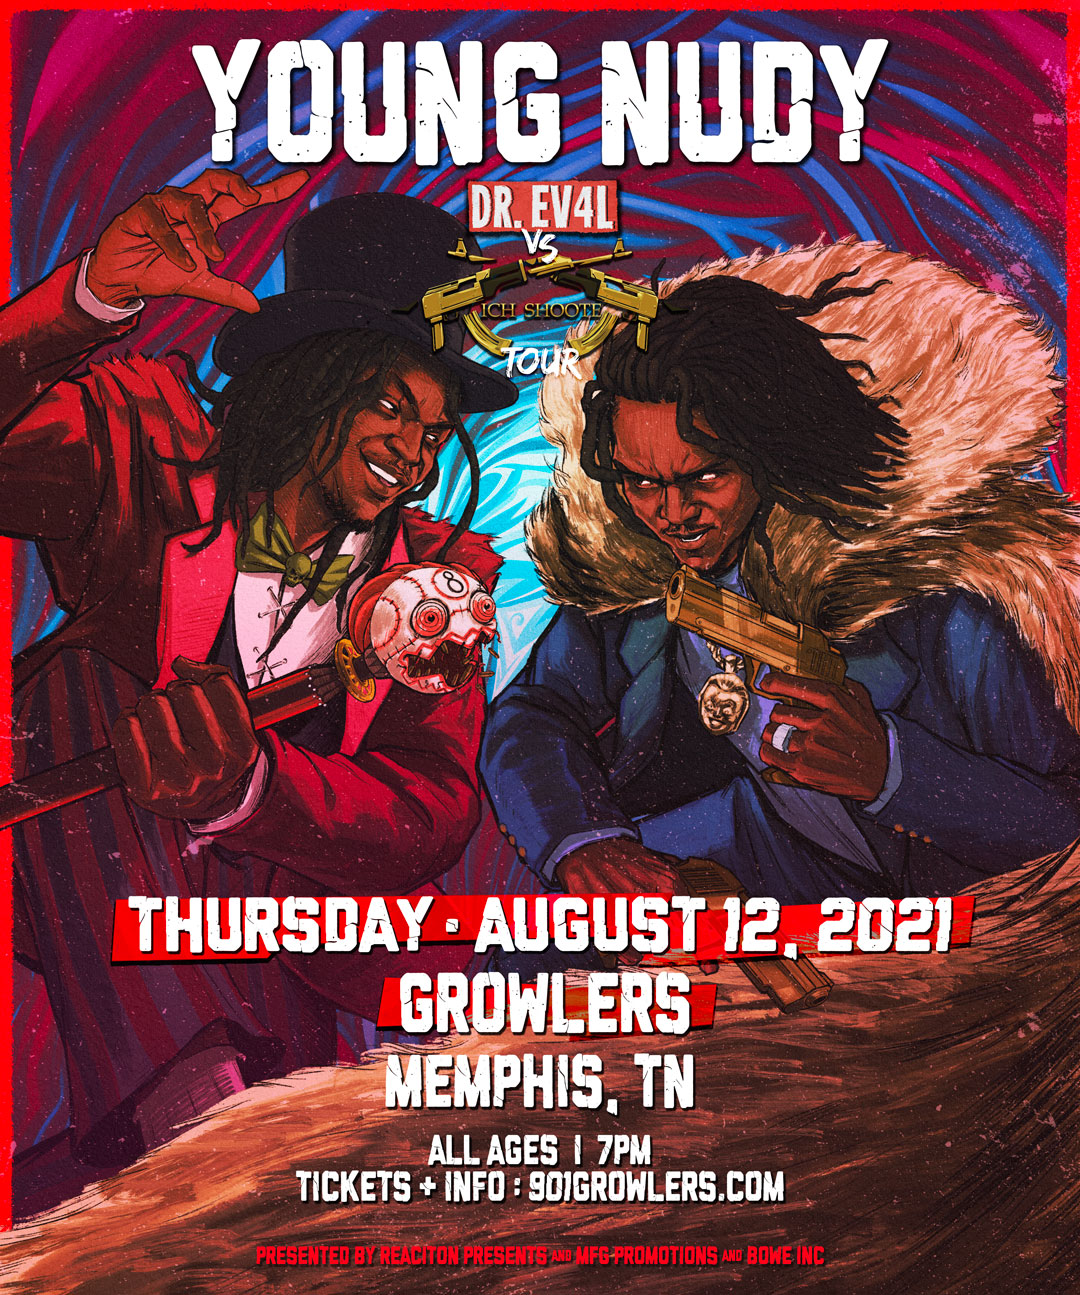 Young Nudy: Main Image